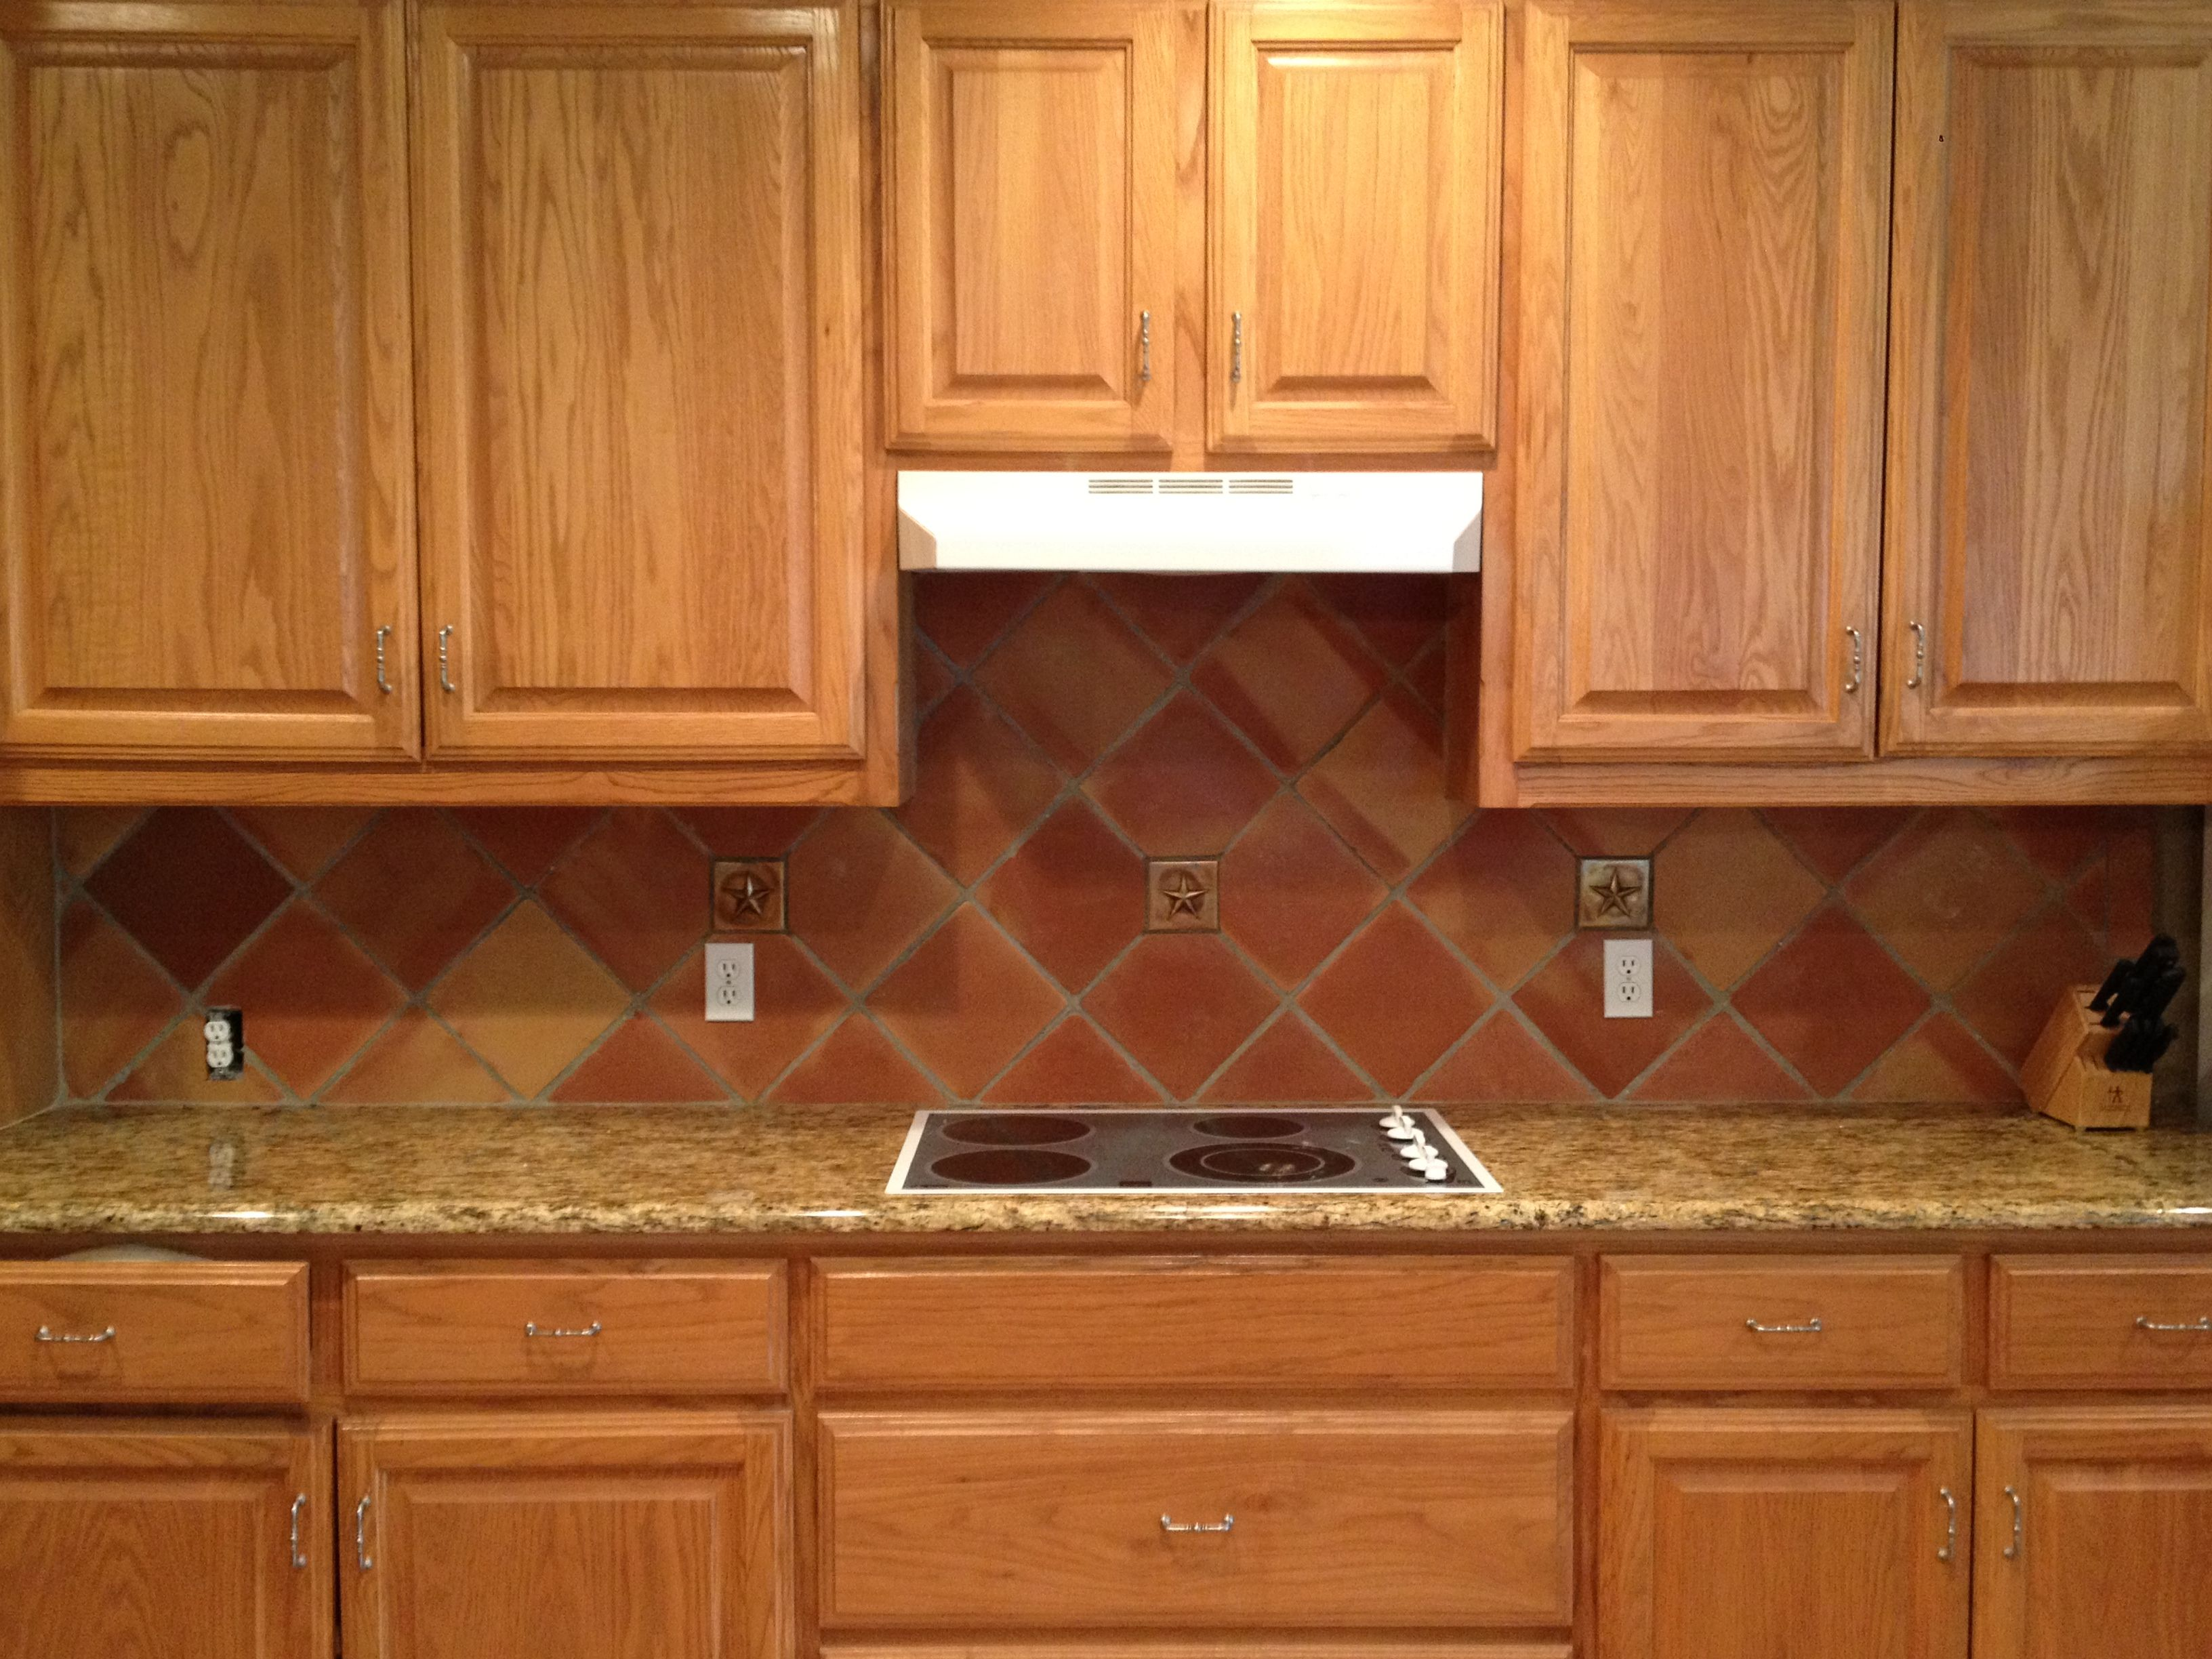 mexican backsplash tiles kitchen curtains ikea saltillo 8x8 tile in